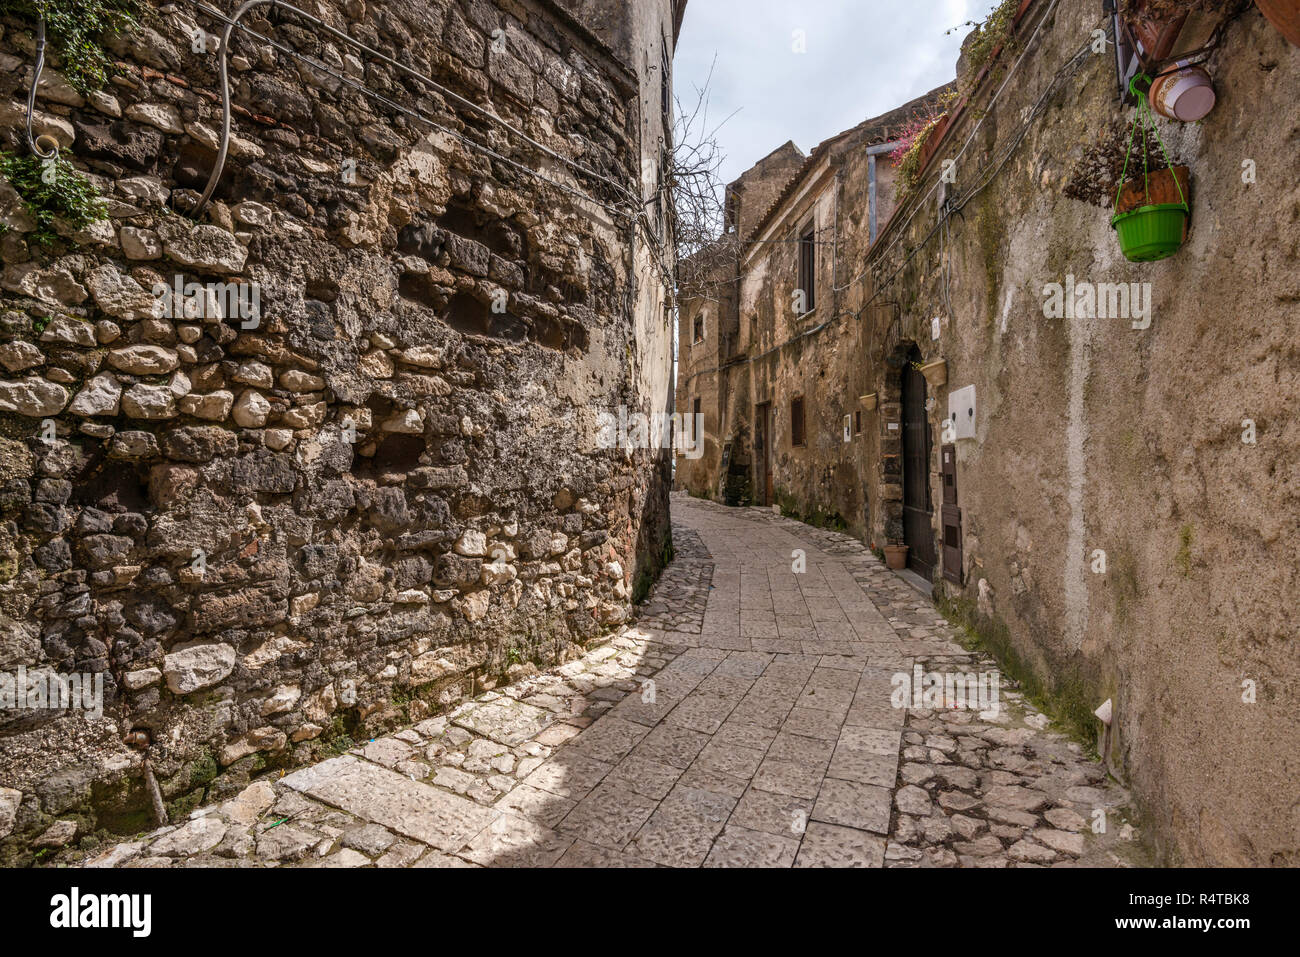 Via Torre in hill town of Casertavecchia, Campania, Italy - Stock Image